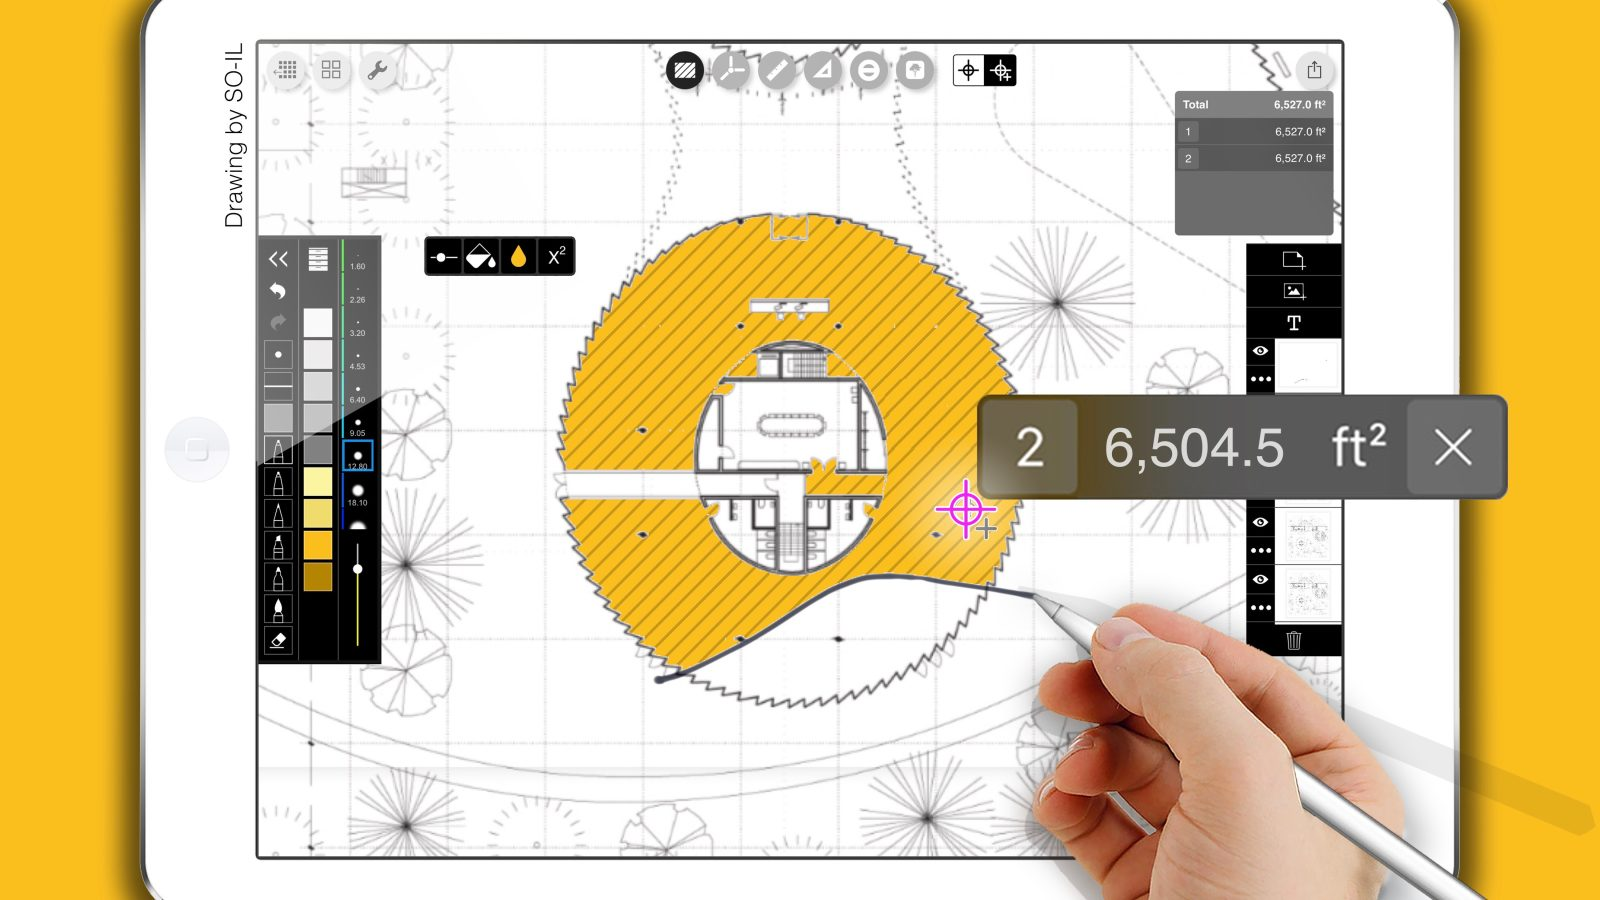 Morpholio trace sketch cad app lets you automatically calculate and label area size with ios